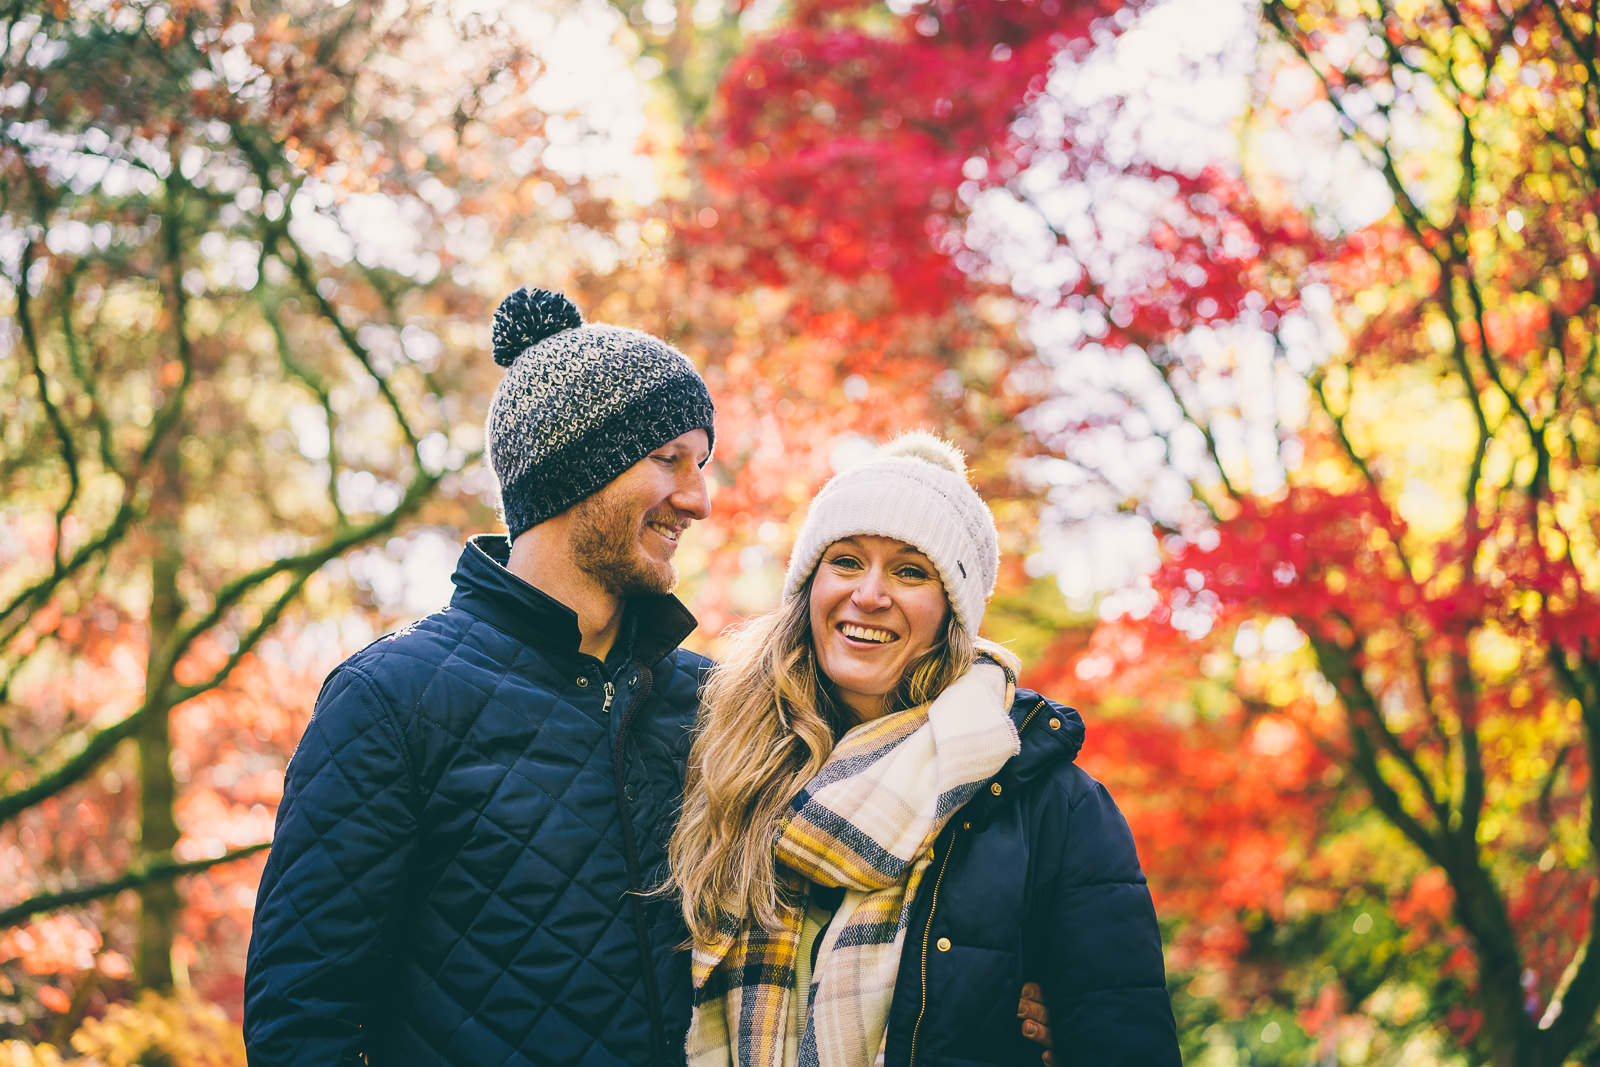 Autumn at Westonbirt Arboretum – Tash & Rob's Pre-Shoot